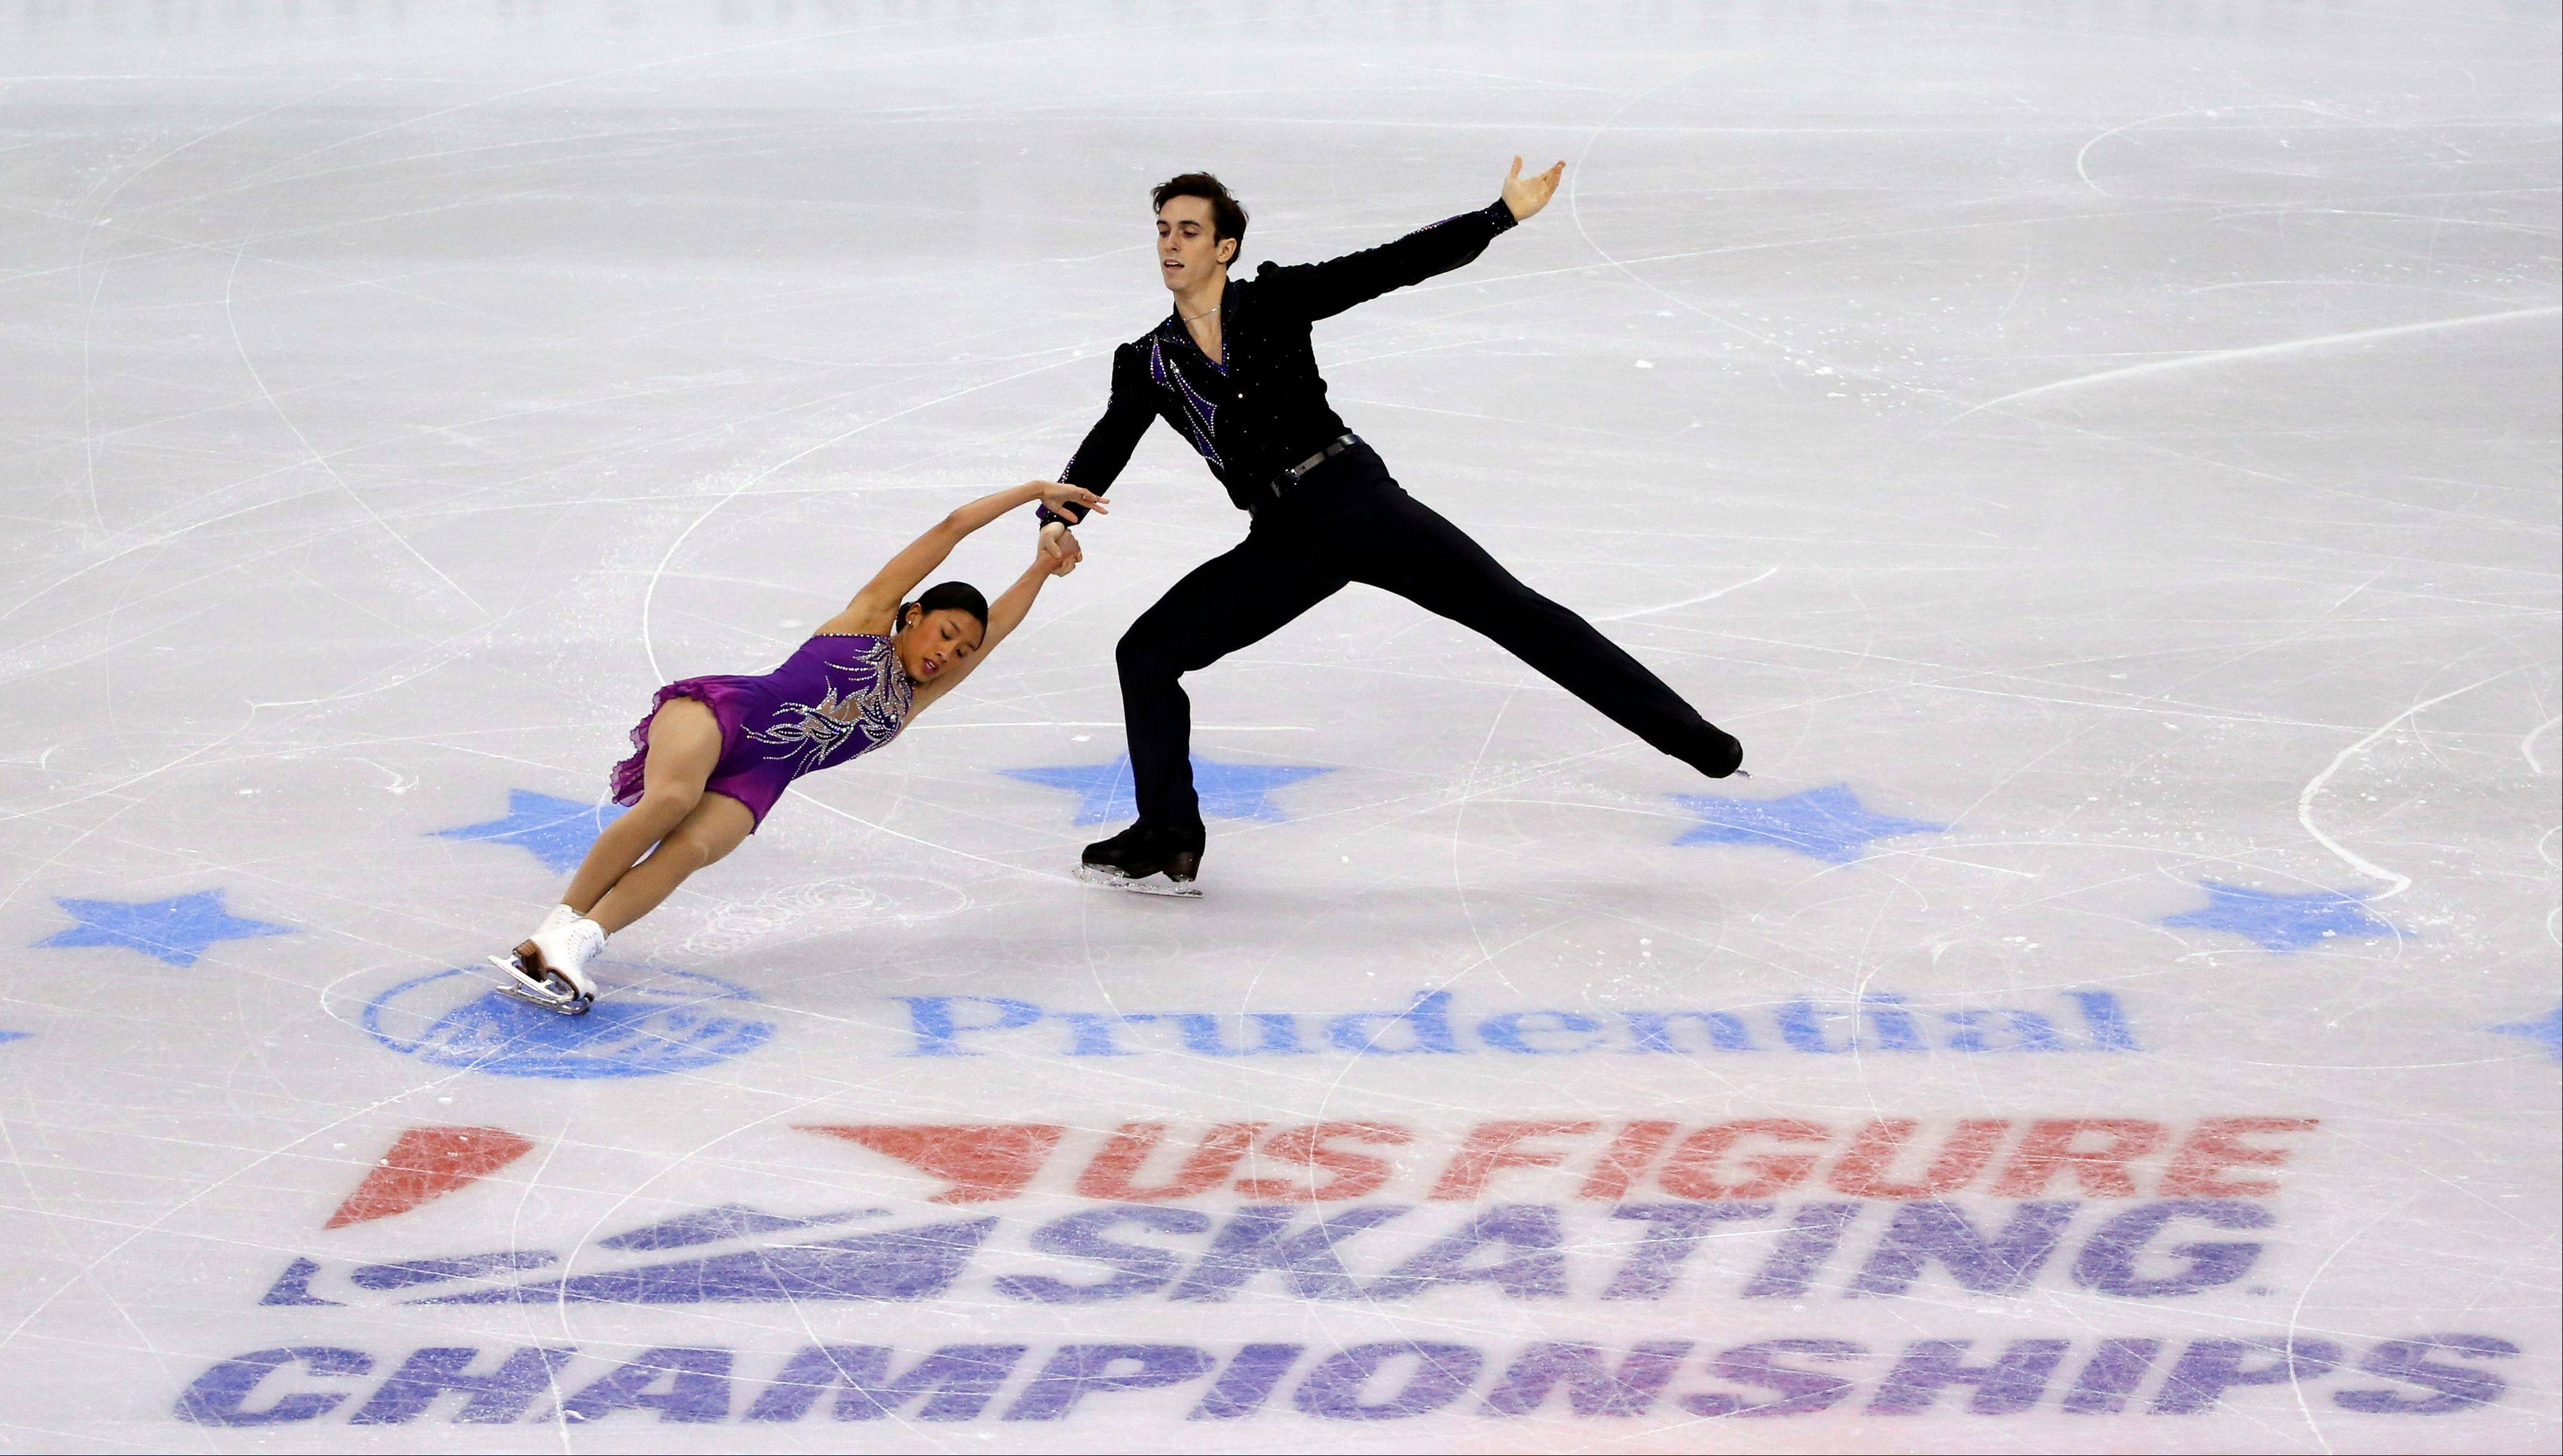 Jessica Noelle Calalang of Glenview and Zack Sidhu skate during the pairs free skate at the U.S. Figure Skating Championships in Boston.